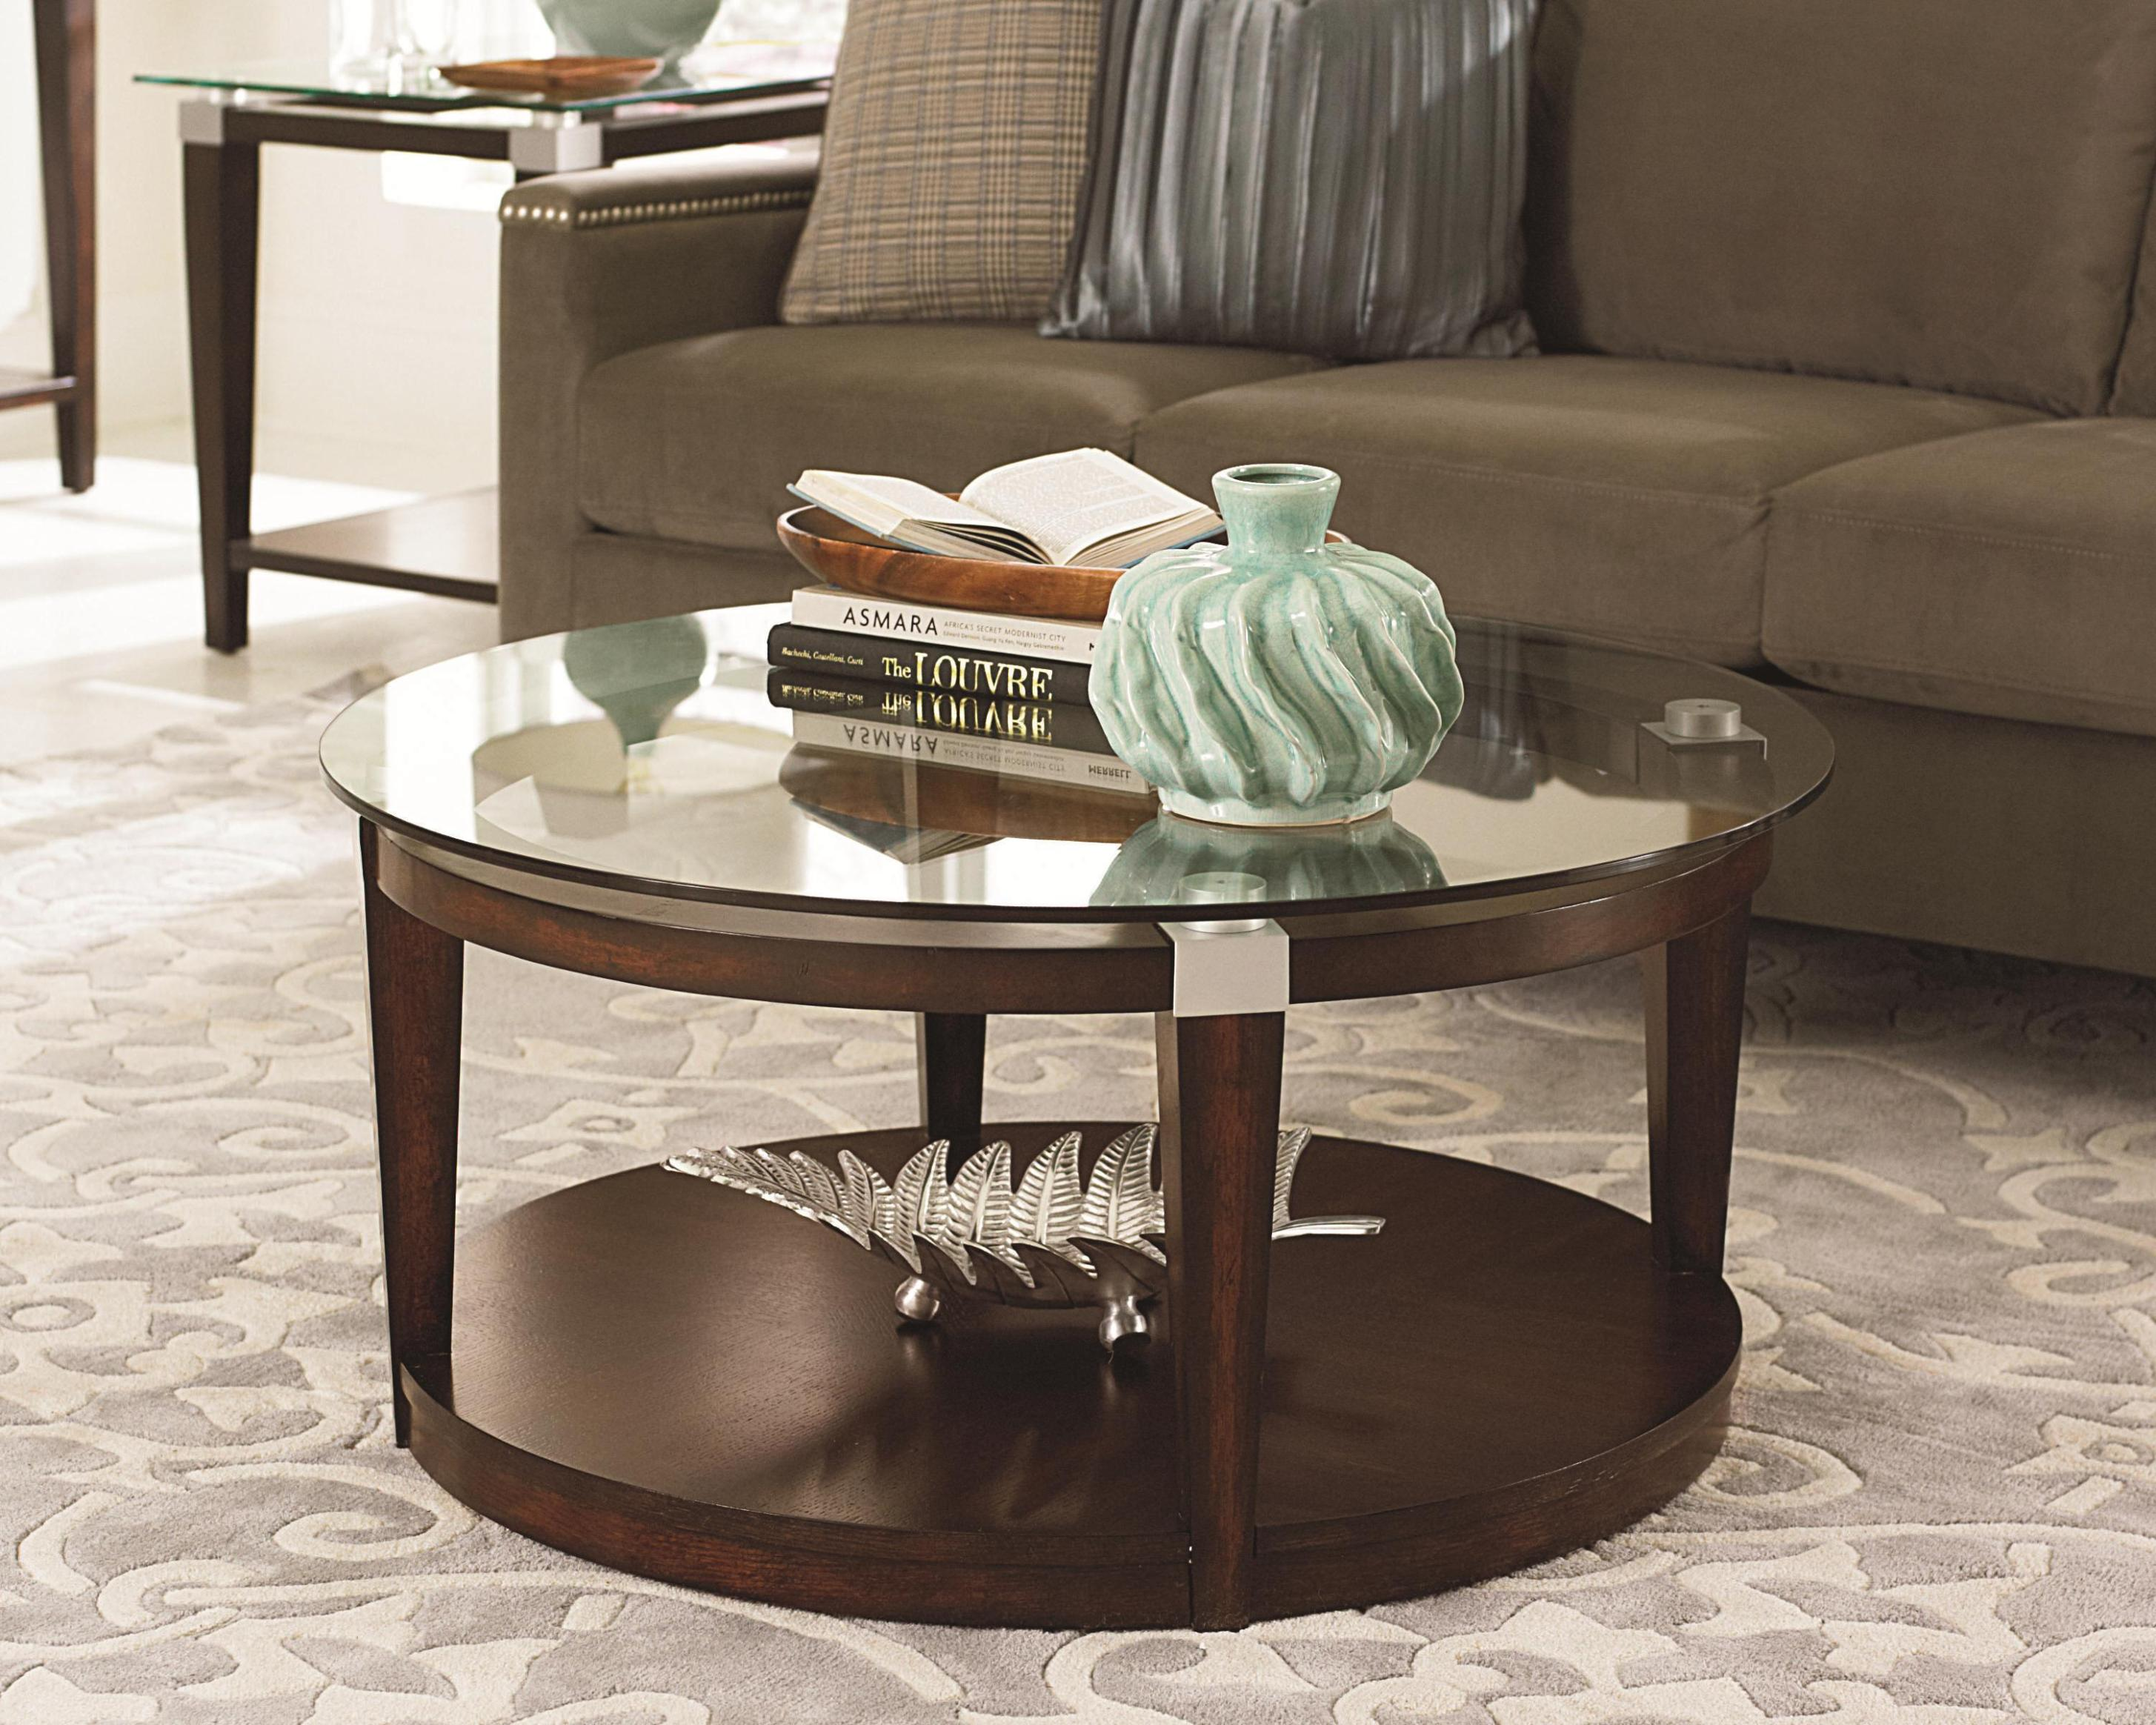 Place Antique Ornaments on Simple Oak Round Glass Coffee Table inside Comfy Sitting Room with Long Sofa